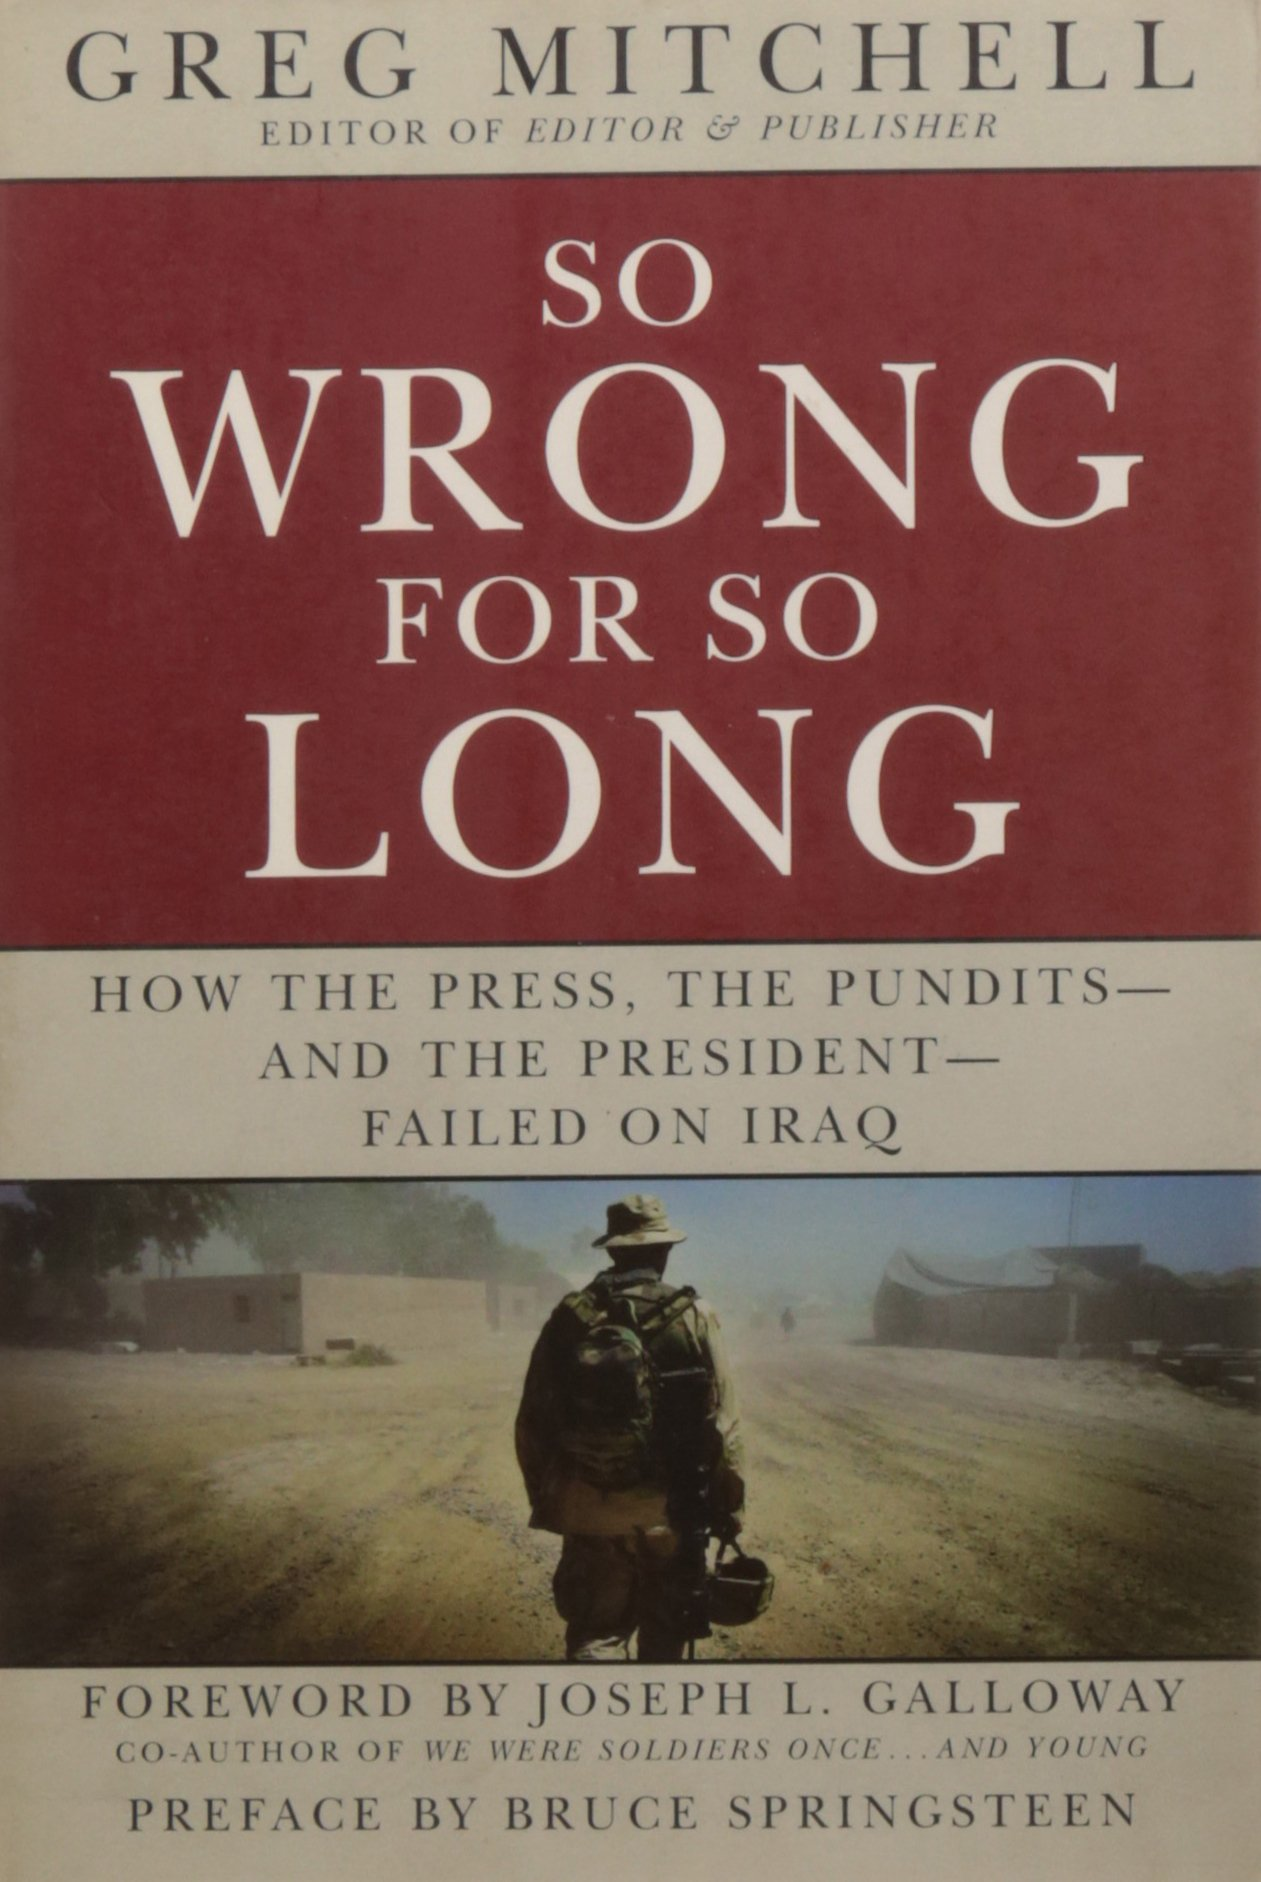 So Wrong for So Long: How the Press, the Pundits--and the President--Failed on Iraq pdf